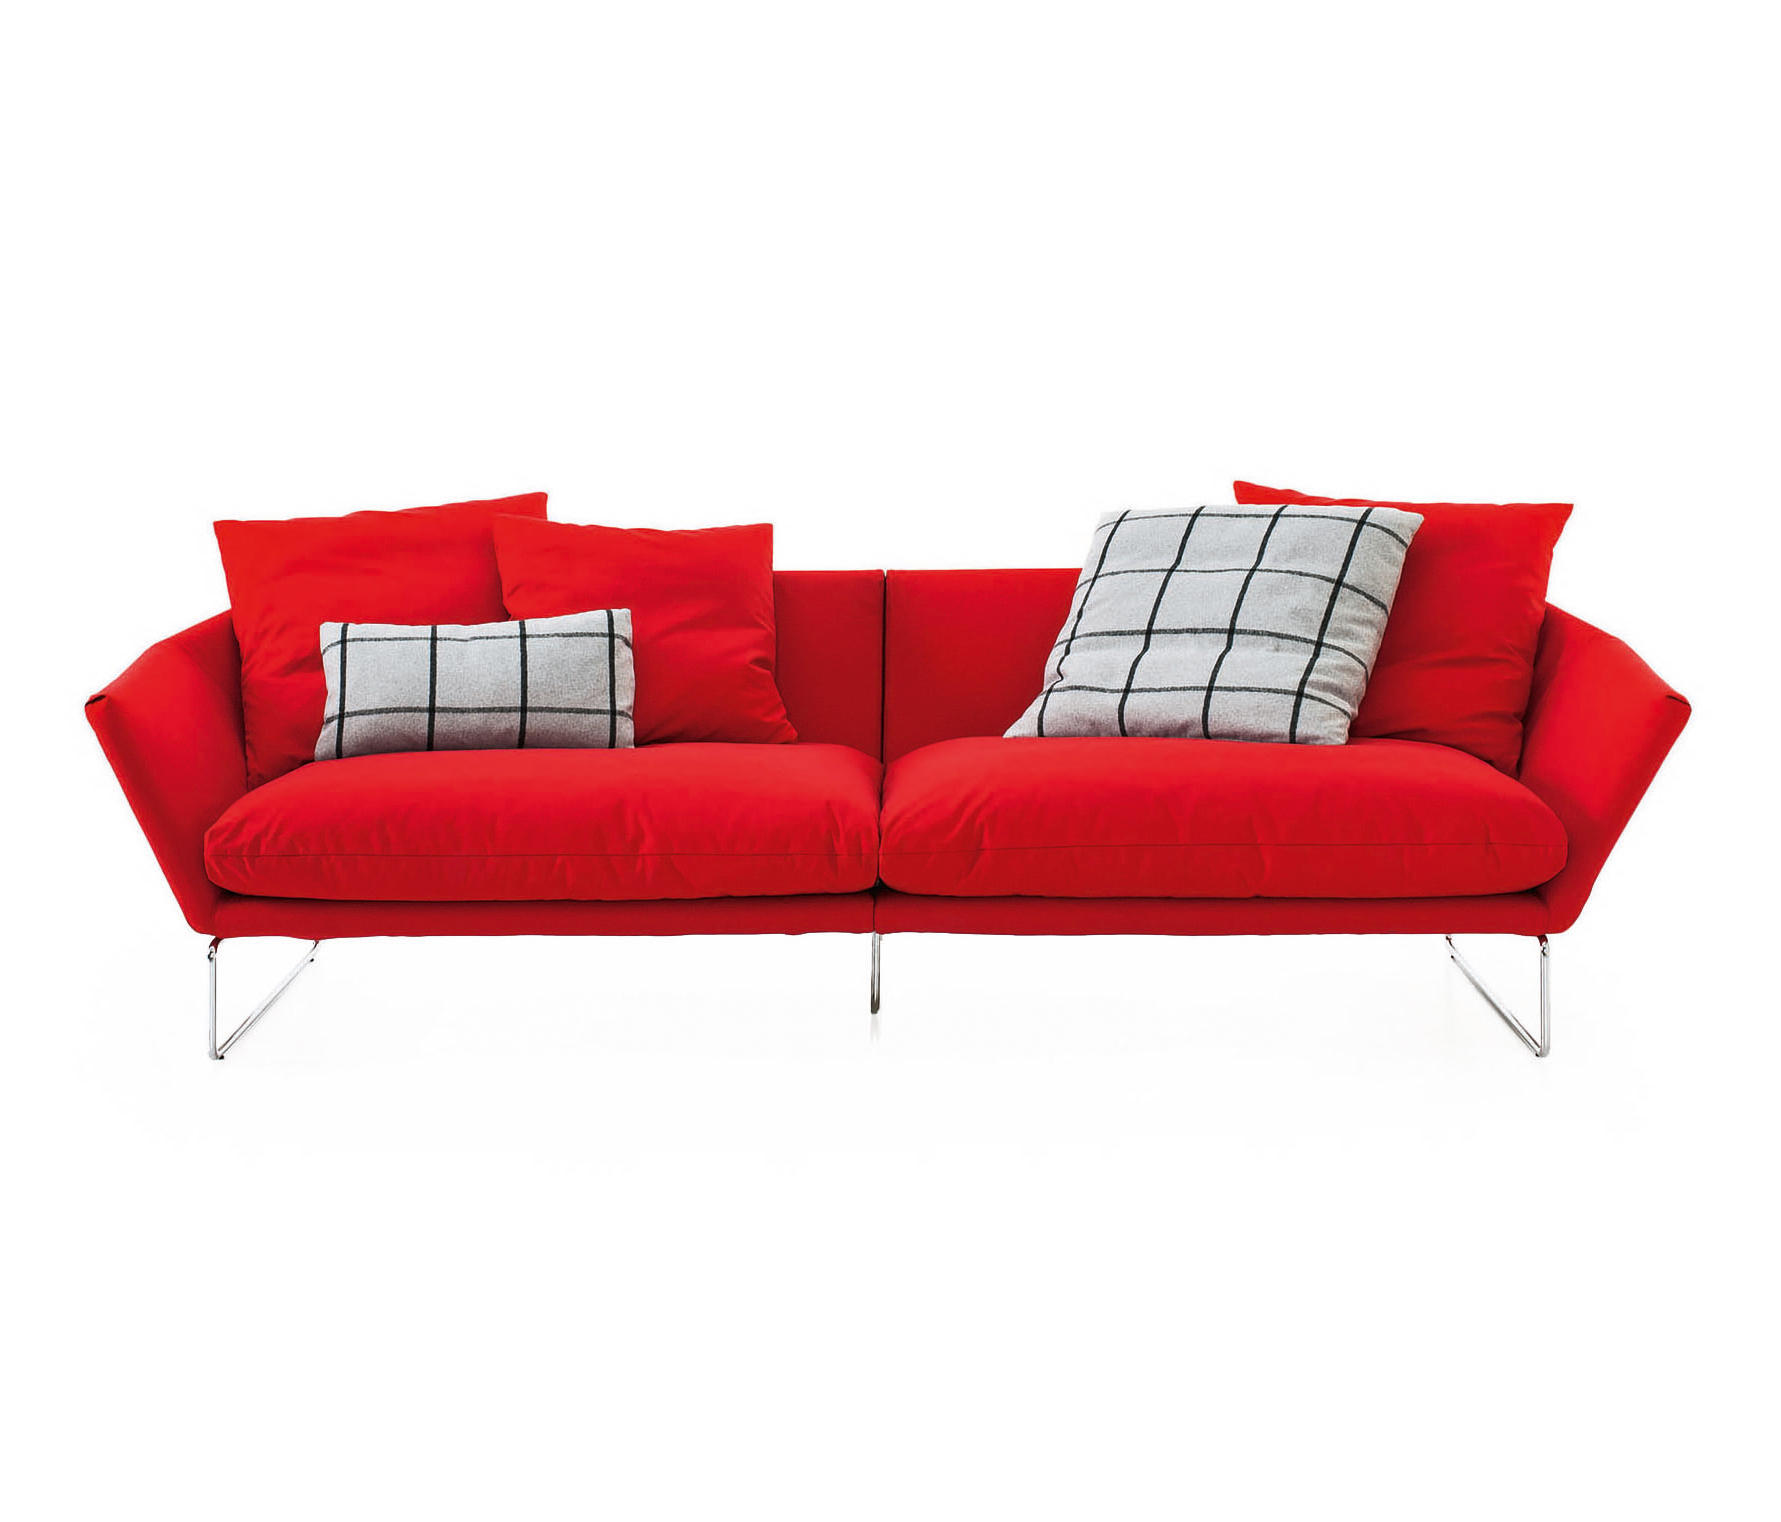 New york sofas sofas center modern sectional with chaise for Sofas in nyc